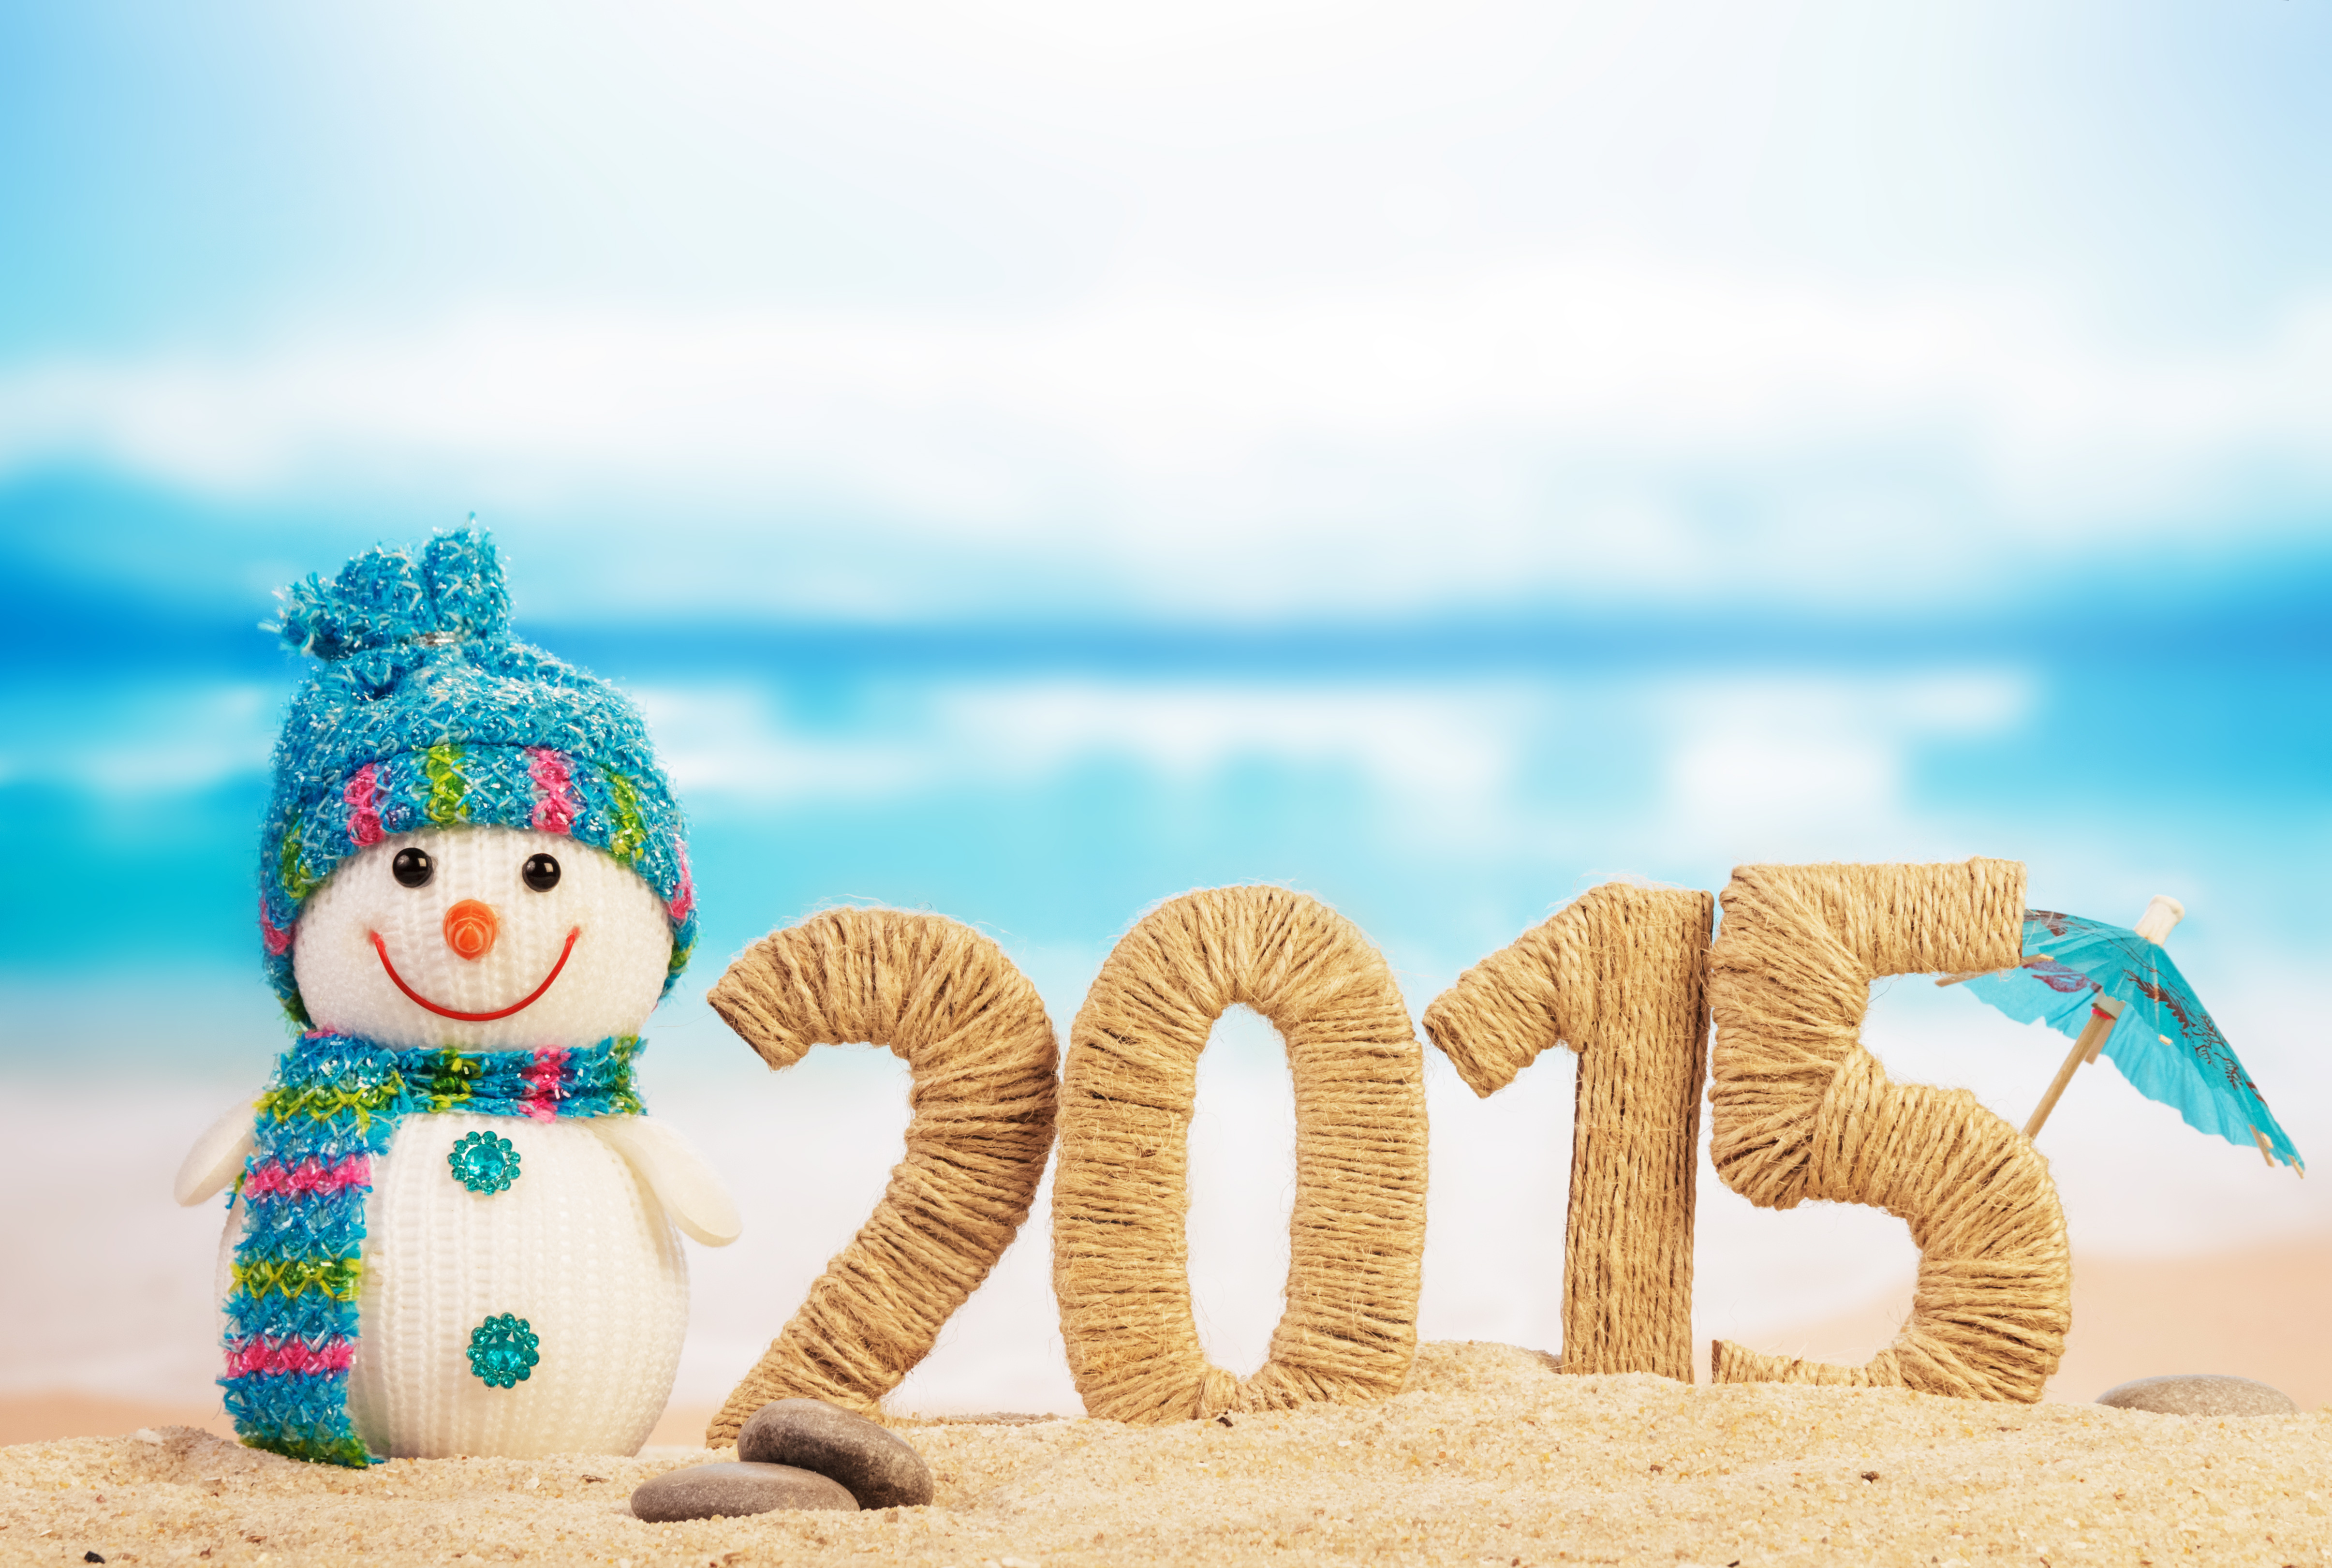 Happy new years 2015 quotes greetings wishes jokes funny happy new years 2015 quotes greetings wishes jokes funny sayings the epoch times kristyandbryce Images